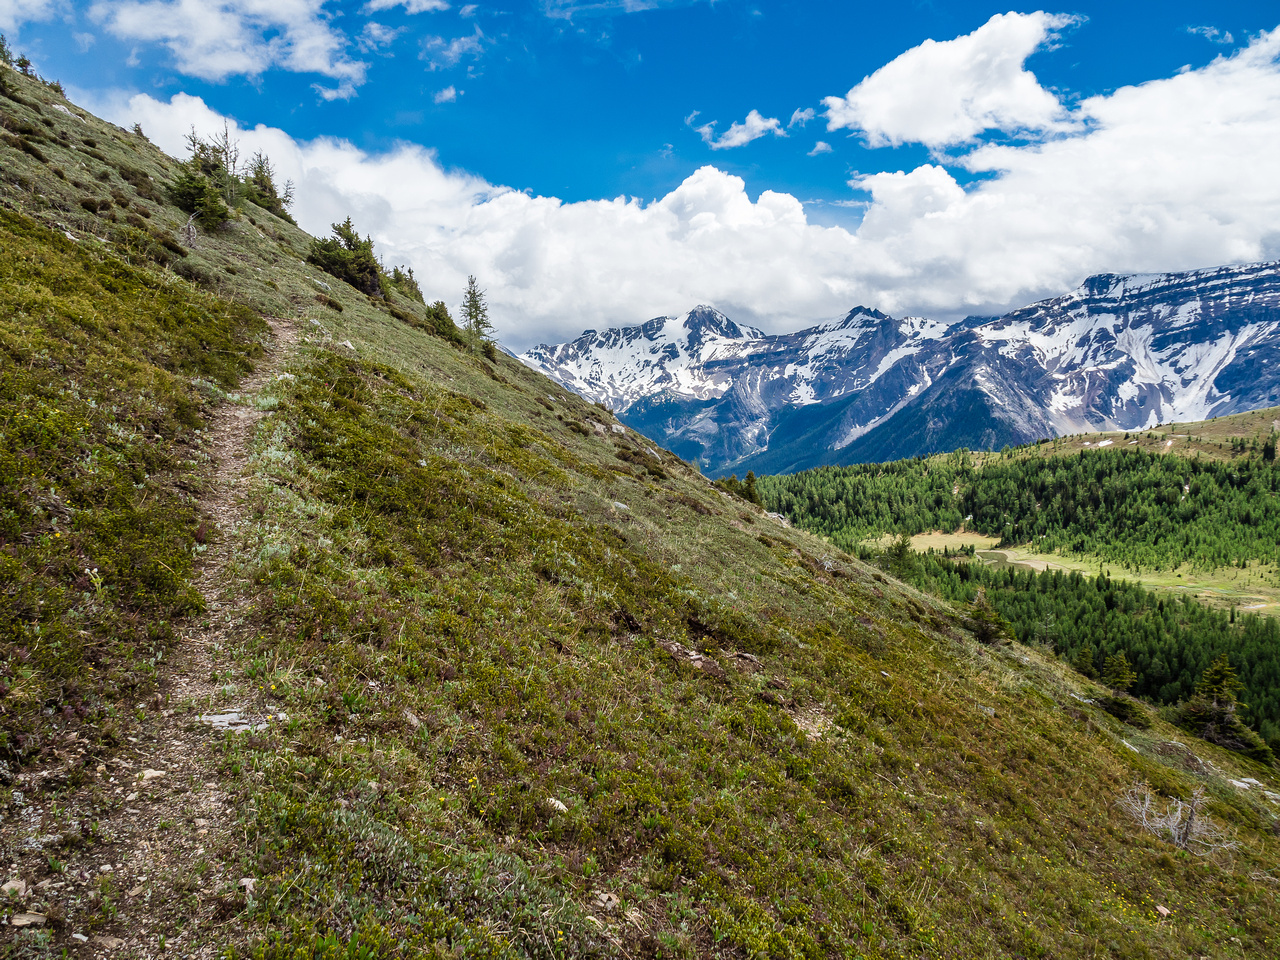 The trail becomes more defined temporarily at the switchbacks. Great views over Citadel Pass at right.